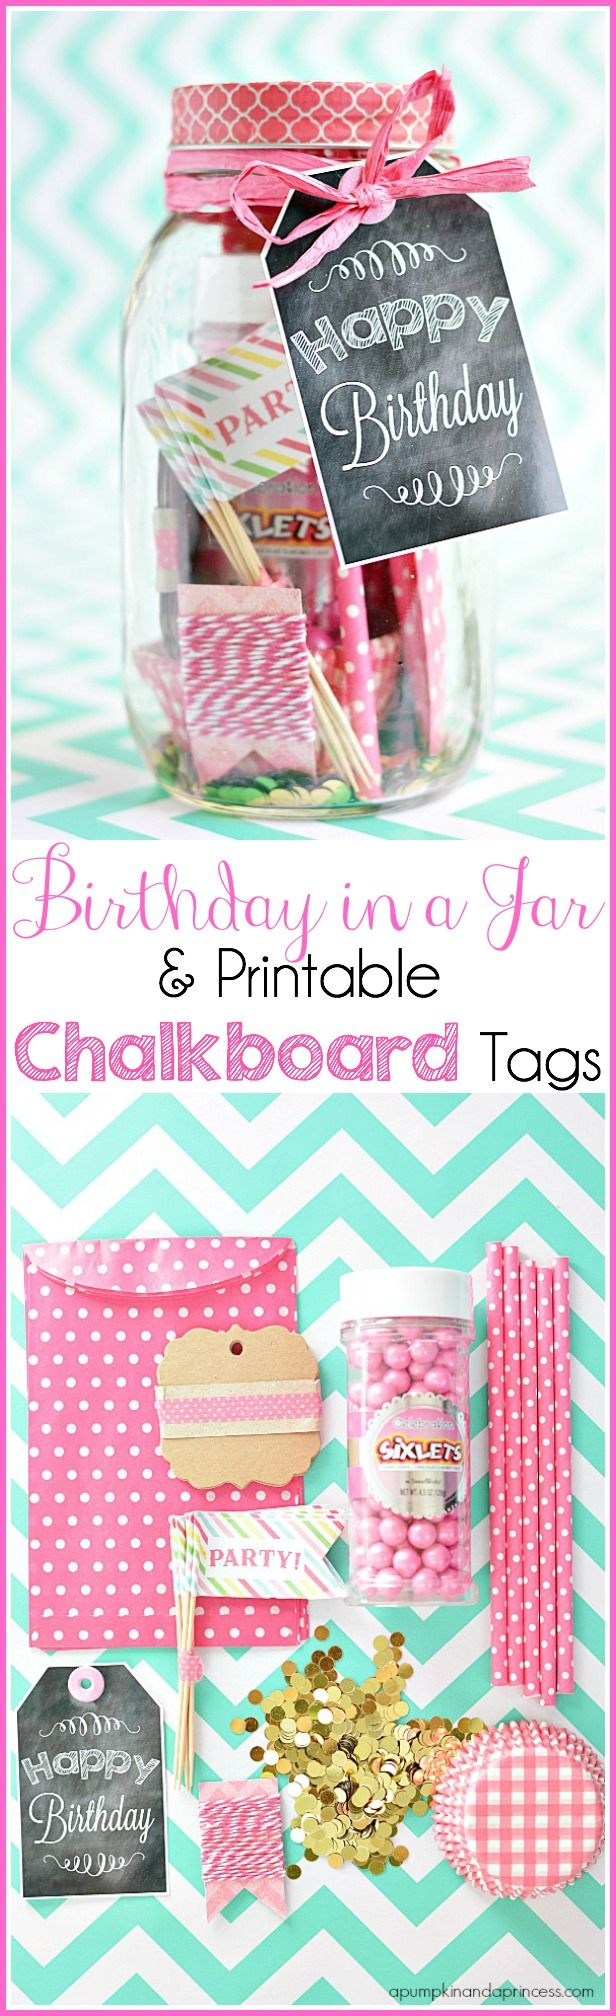 Mason jar birthday gift idea with printable tag